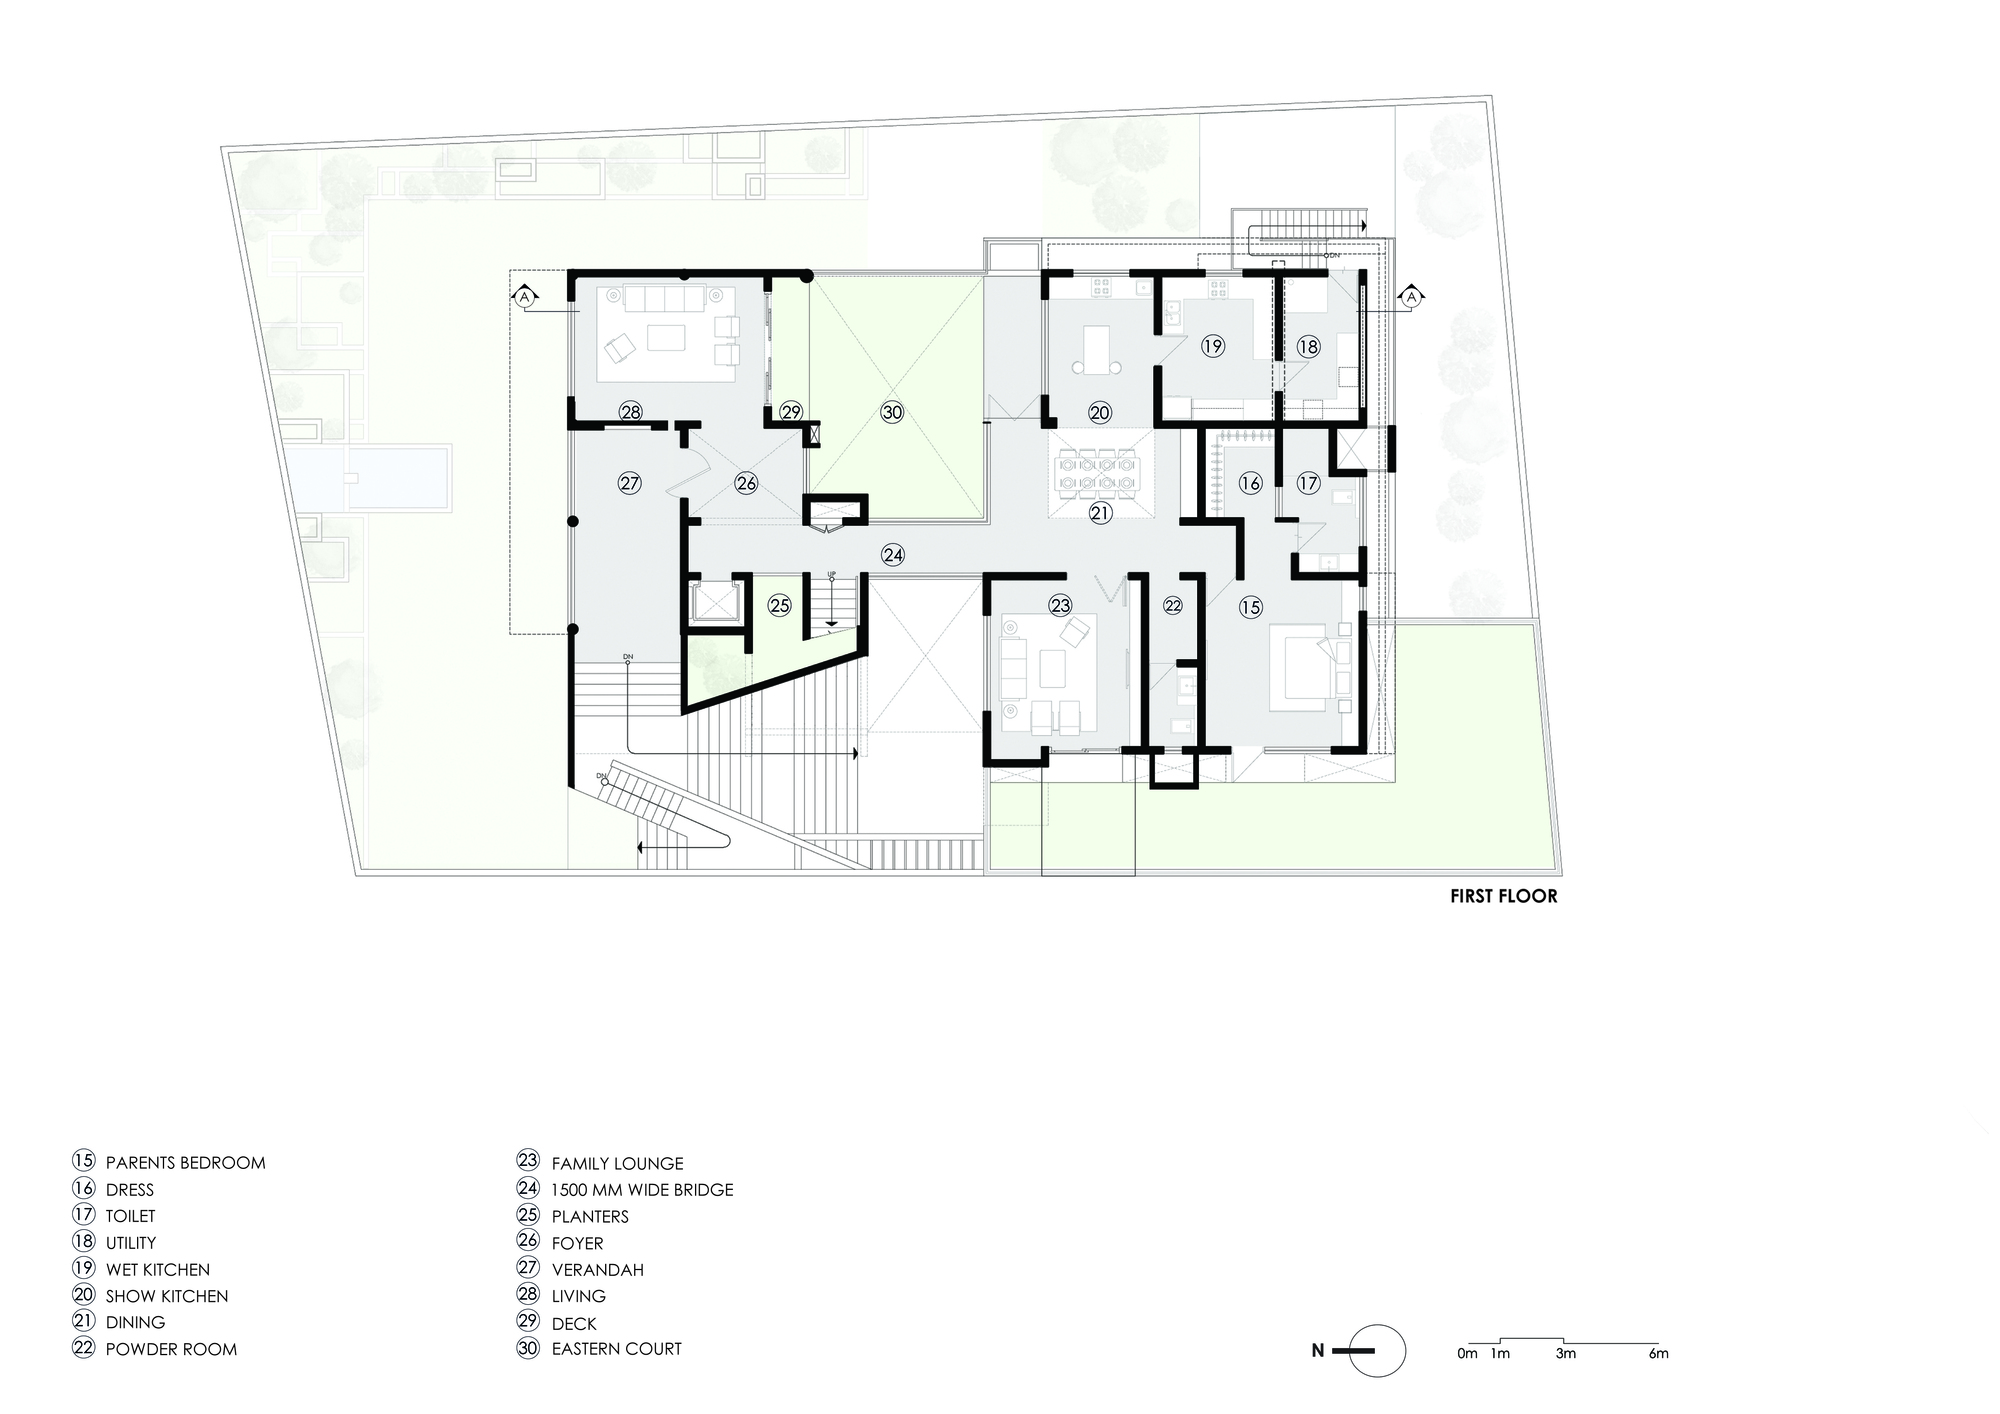 big floor plans gallery of hks house sdeg 14 10723